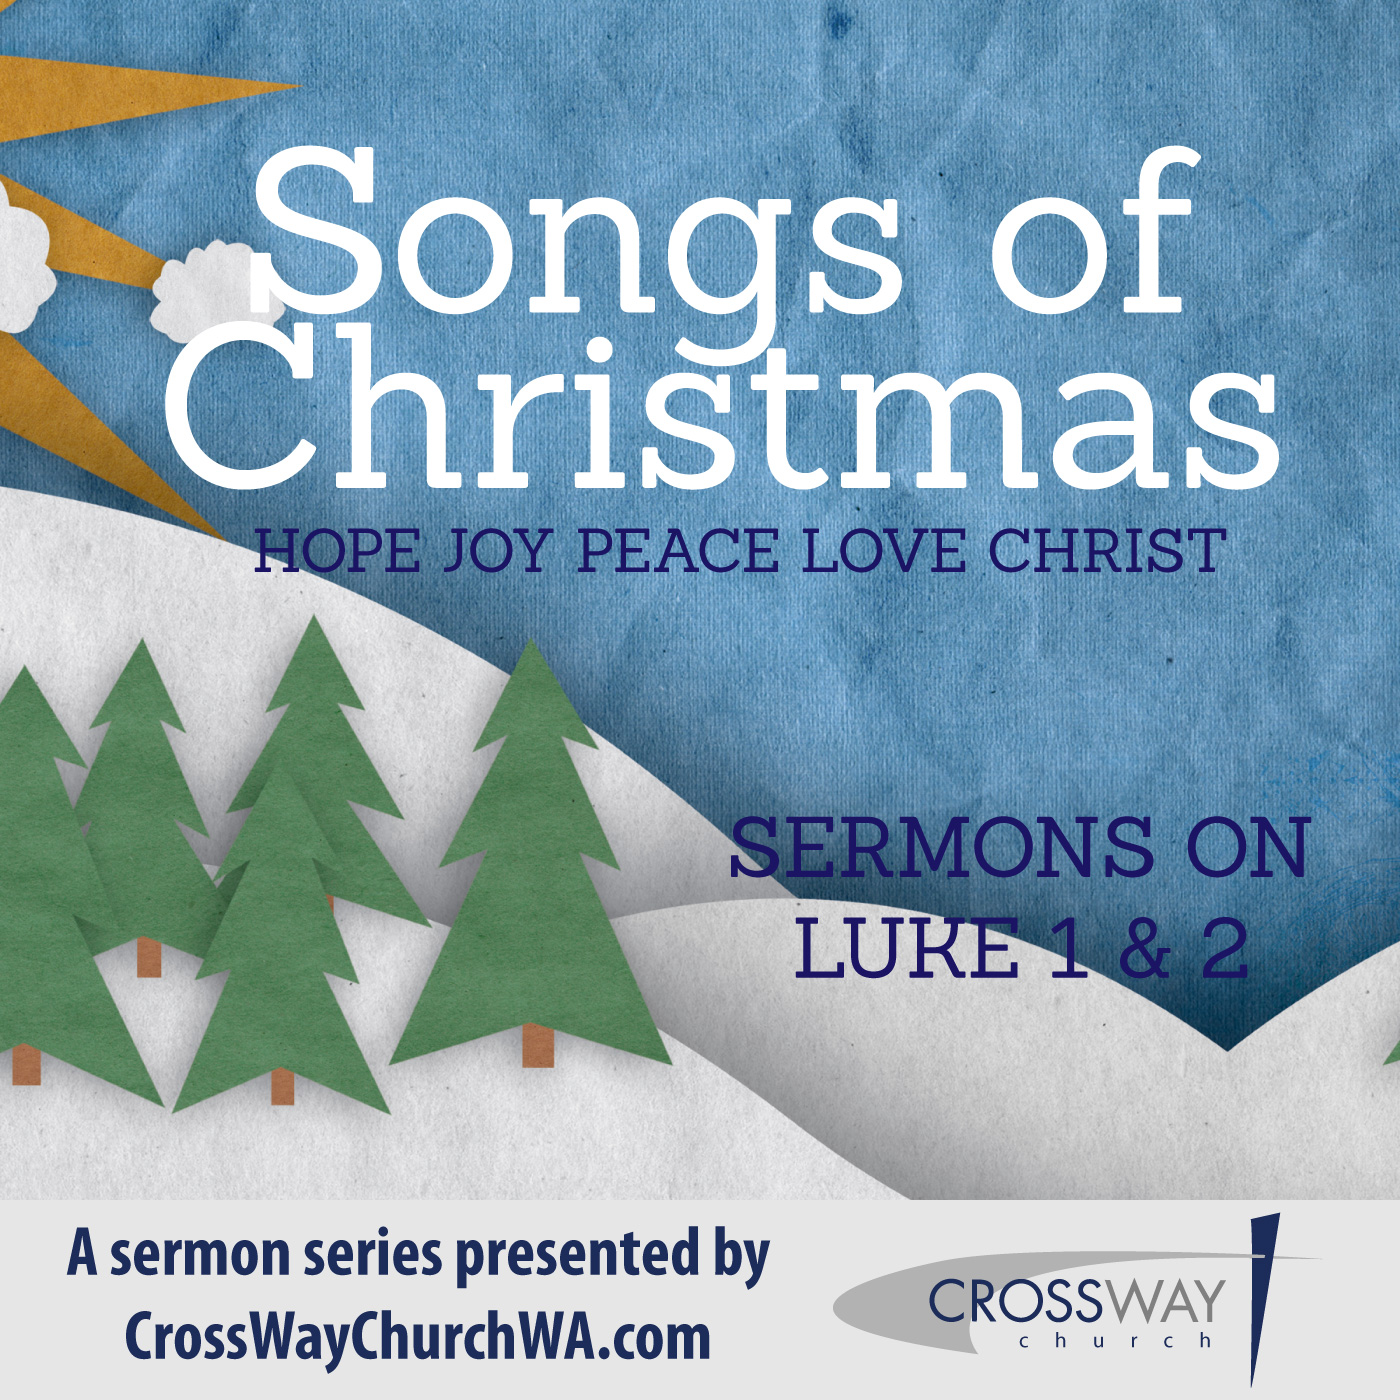 Songs of Christmas: Simeon's Song (Part 4)